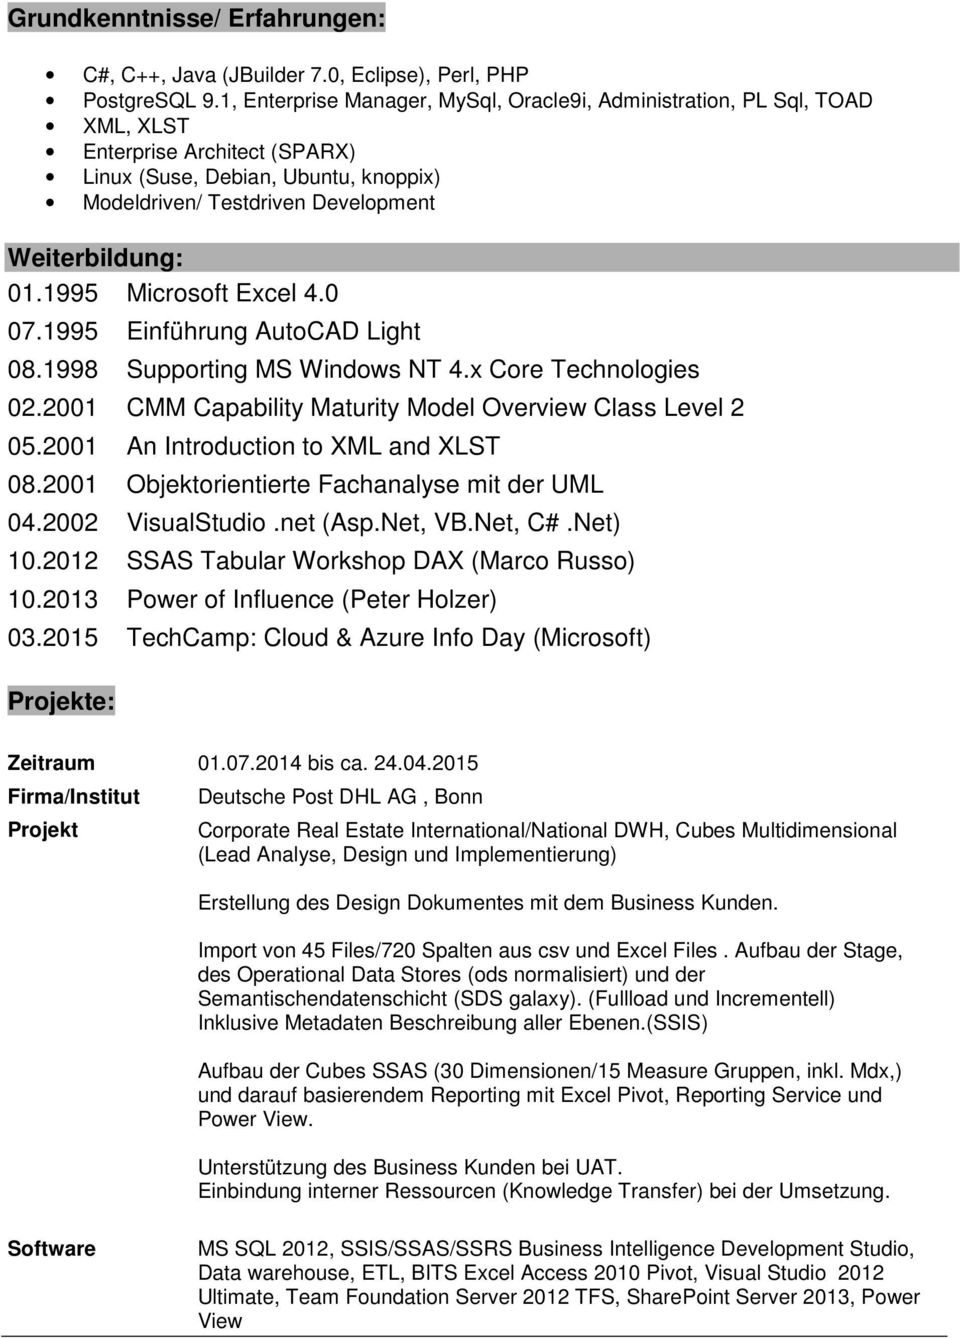 1995 Microsoft Excel 4.0 07.1995 Einführung AutoCAD Light 08.1998 Supporting MS Windows NT 4.x Core Technologies 02.2001 CMM Capability Maturity Model Overview Class Level 2 05.